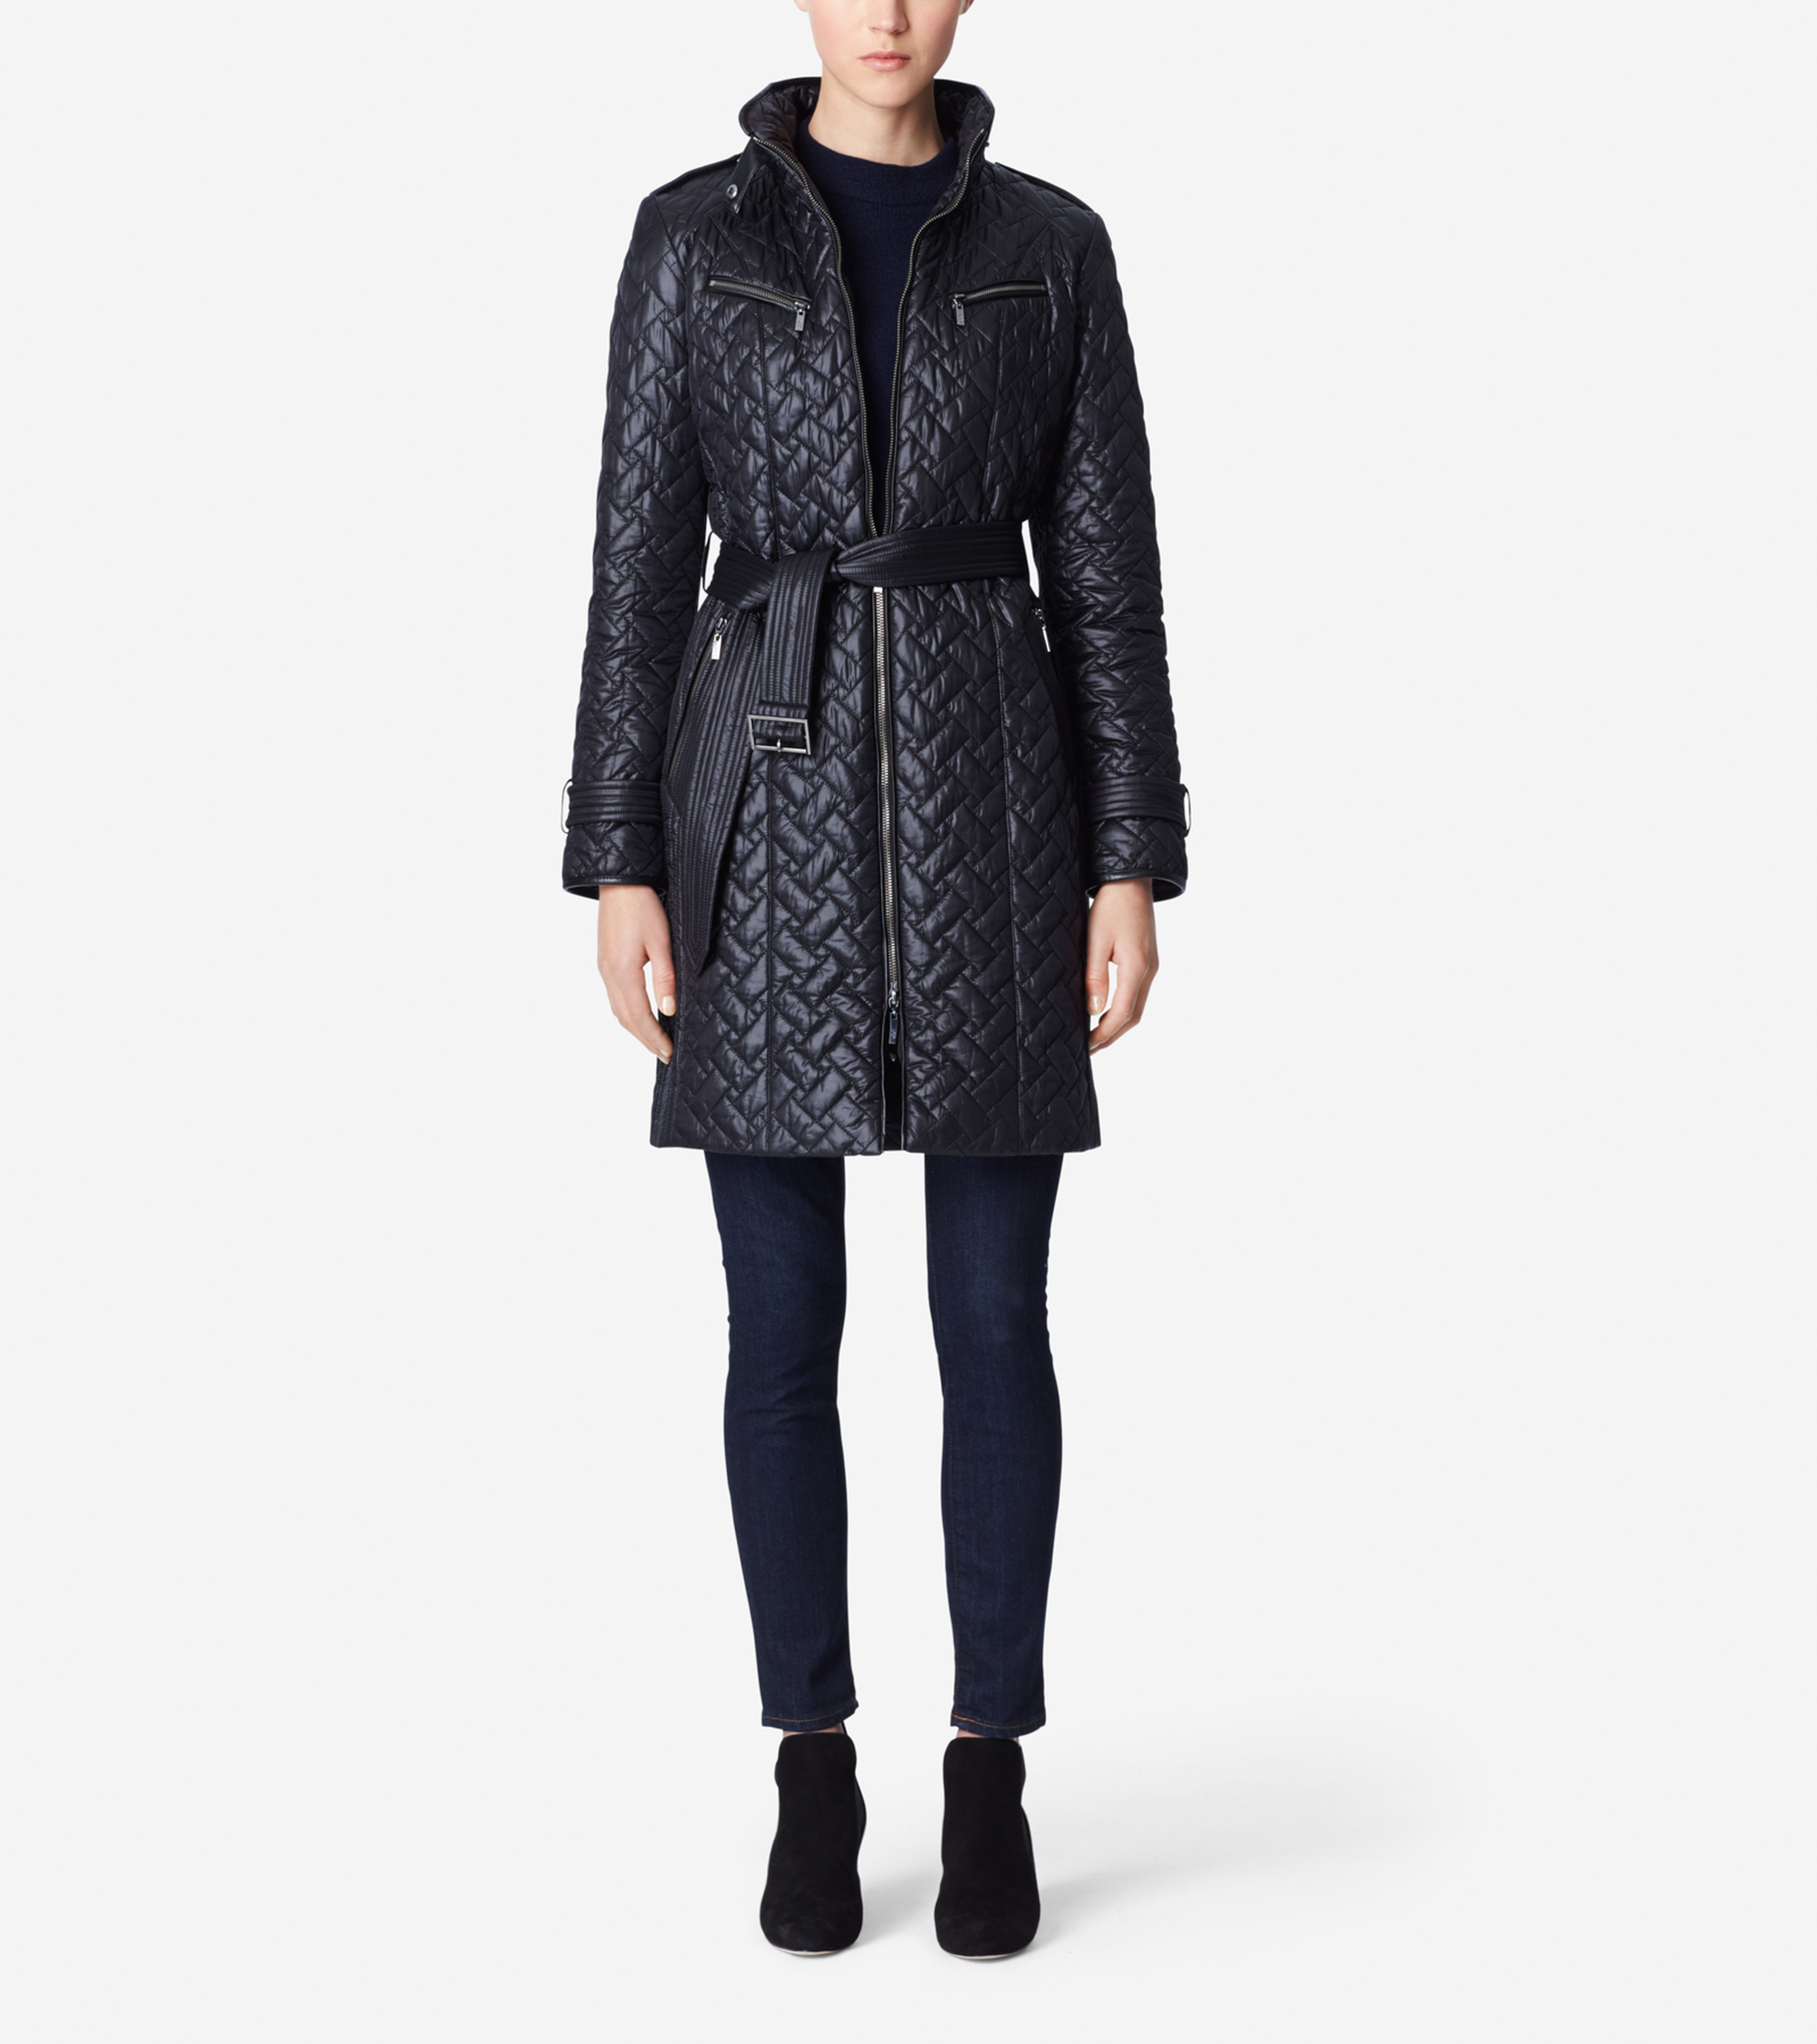 Lyst Cole Haan Signature Quilt Belted Coat In Black